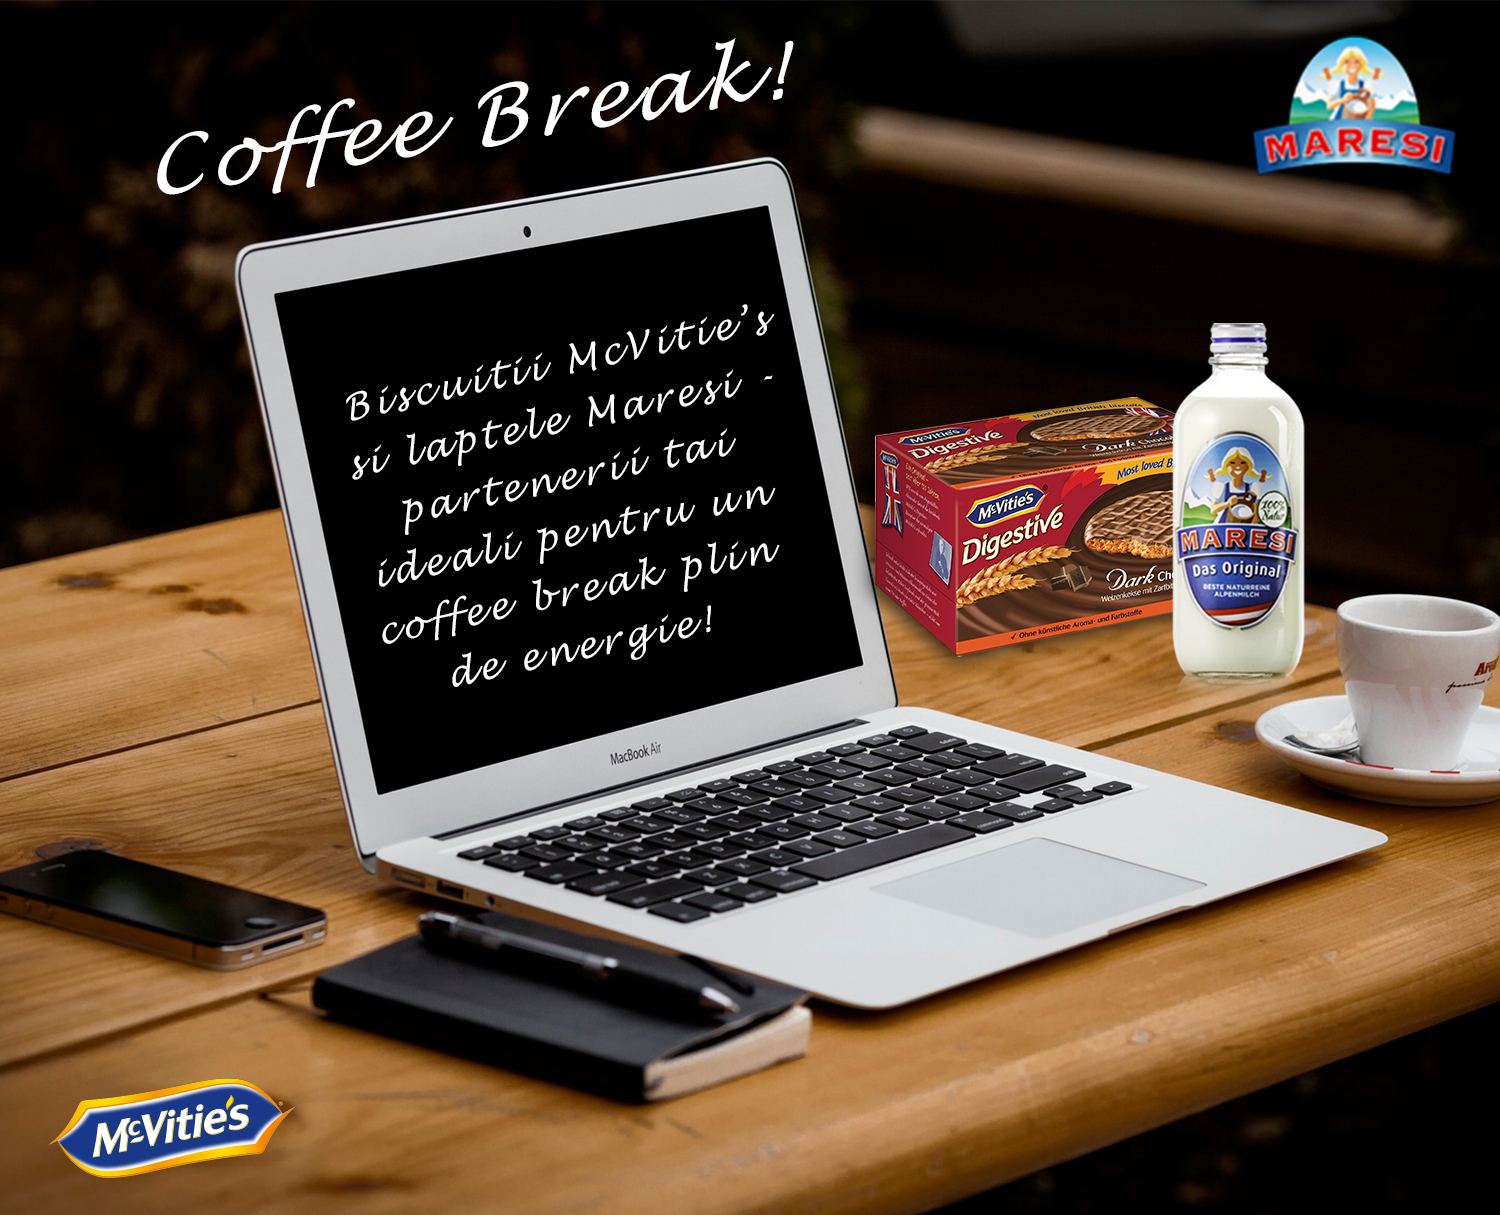 Coffee Break_Maresi_McVities